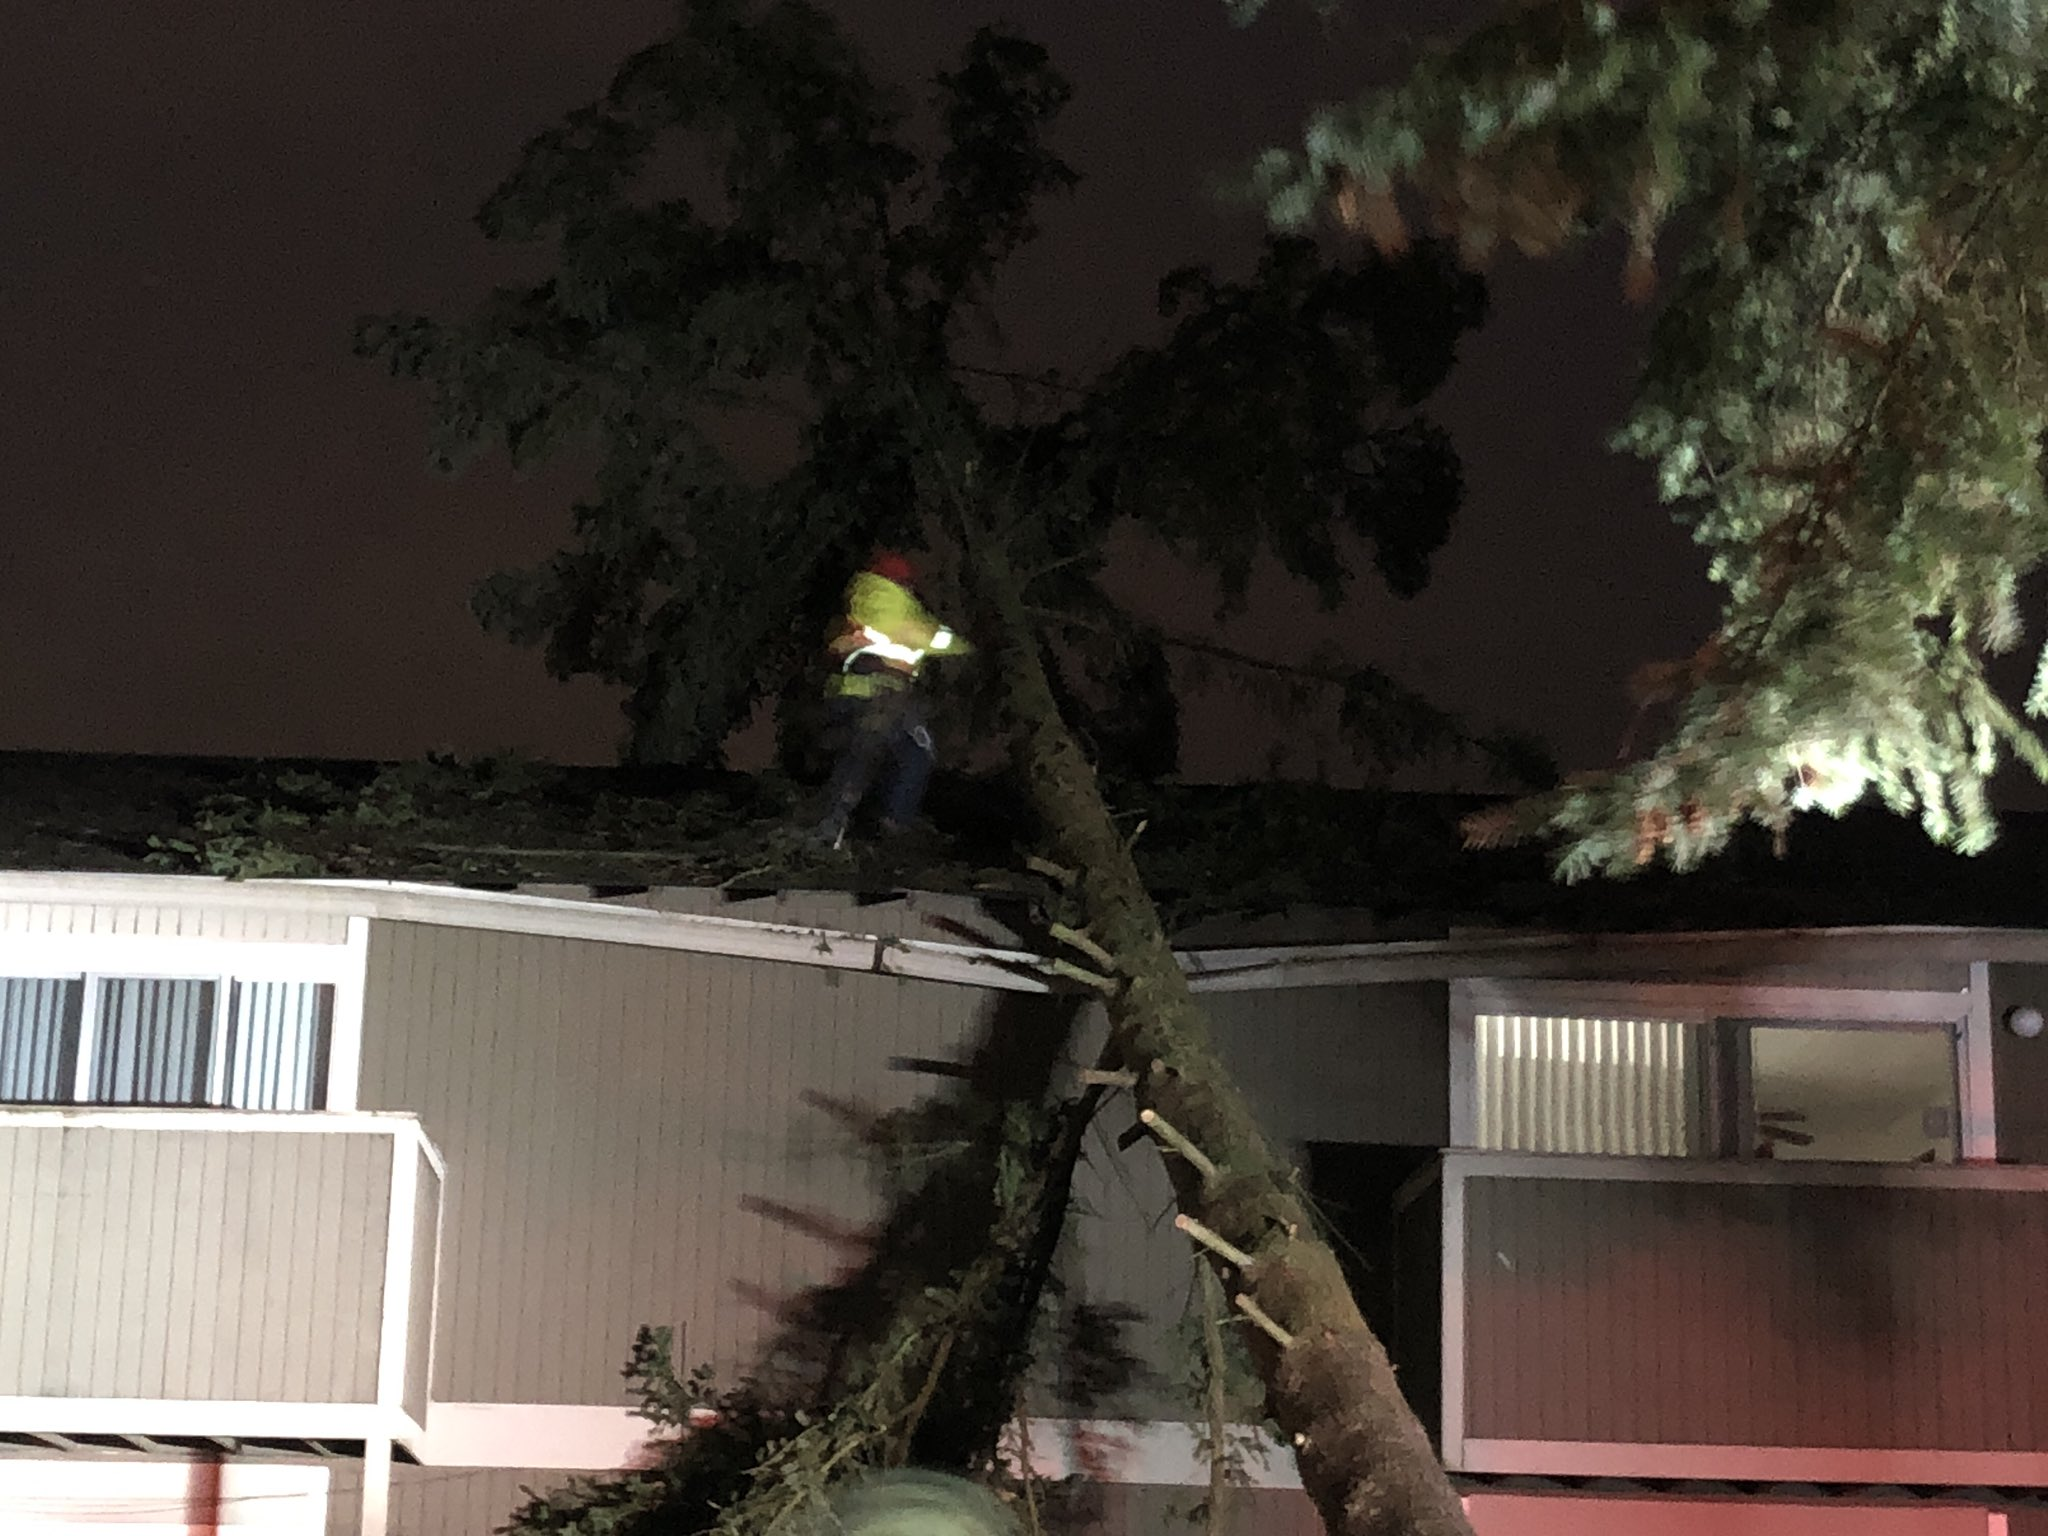 Crews work to clear a 40-foot-tall tree that fell onto an apartment complex in Kent Thursday night, March 8, 2018. (Photo: KOMO News){ }